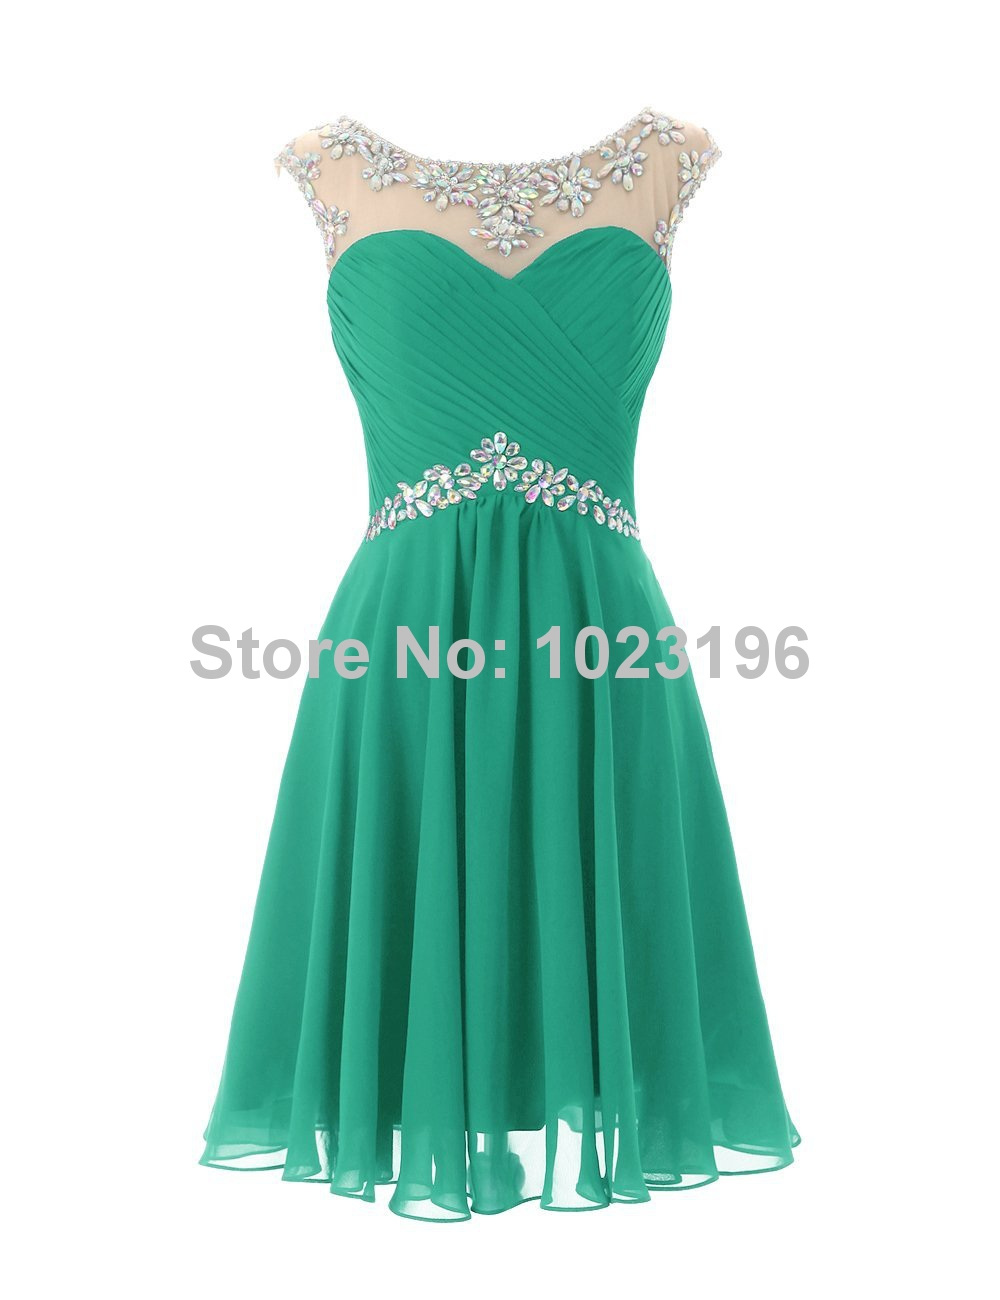 Homecoming Party Dresses - Boutique Prom Dresses